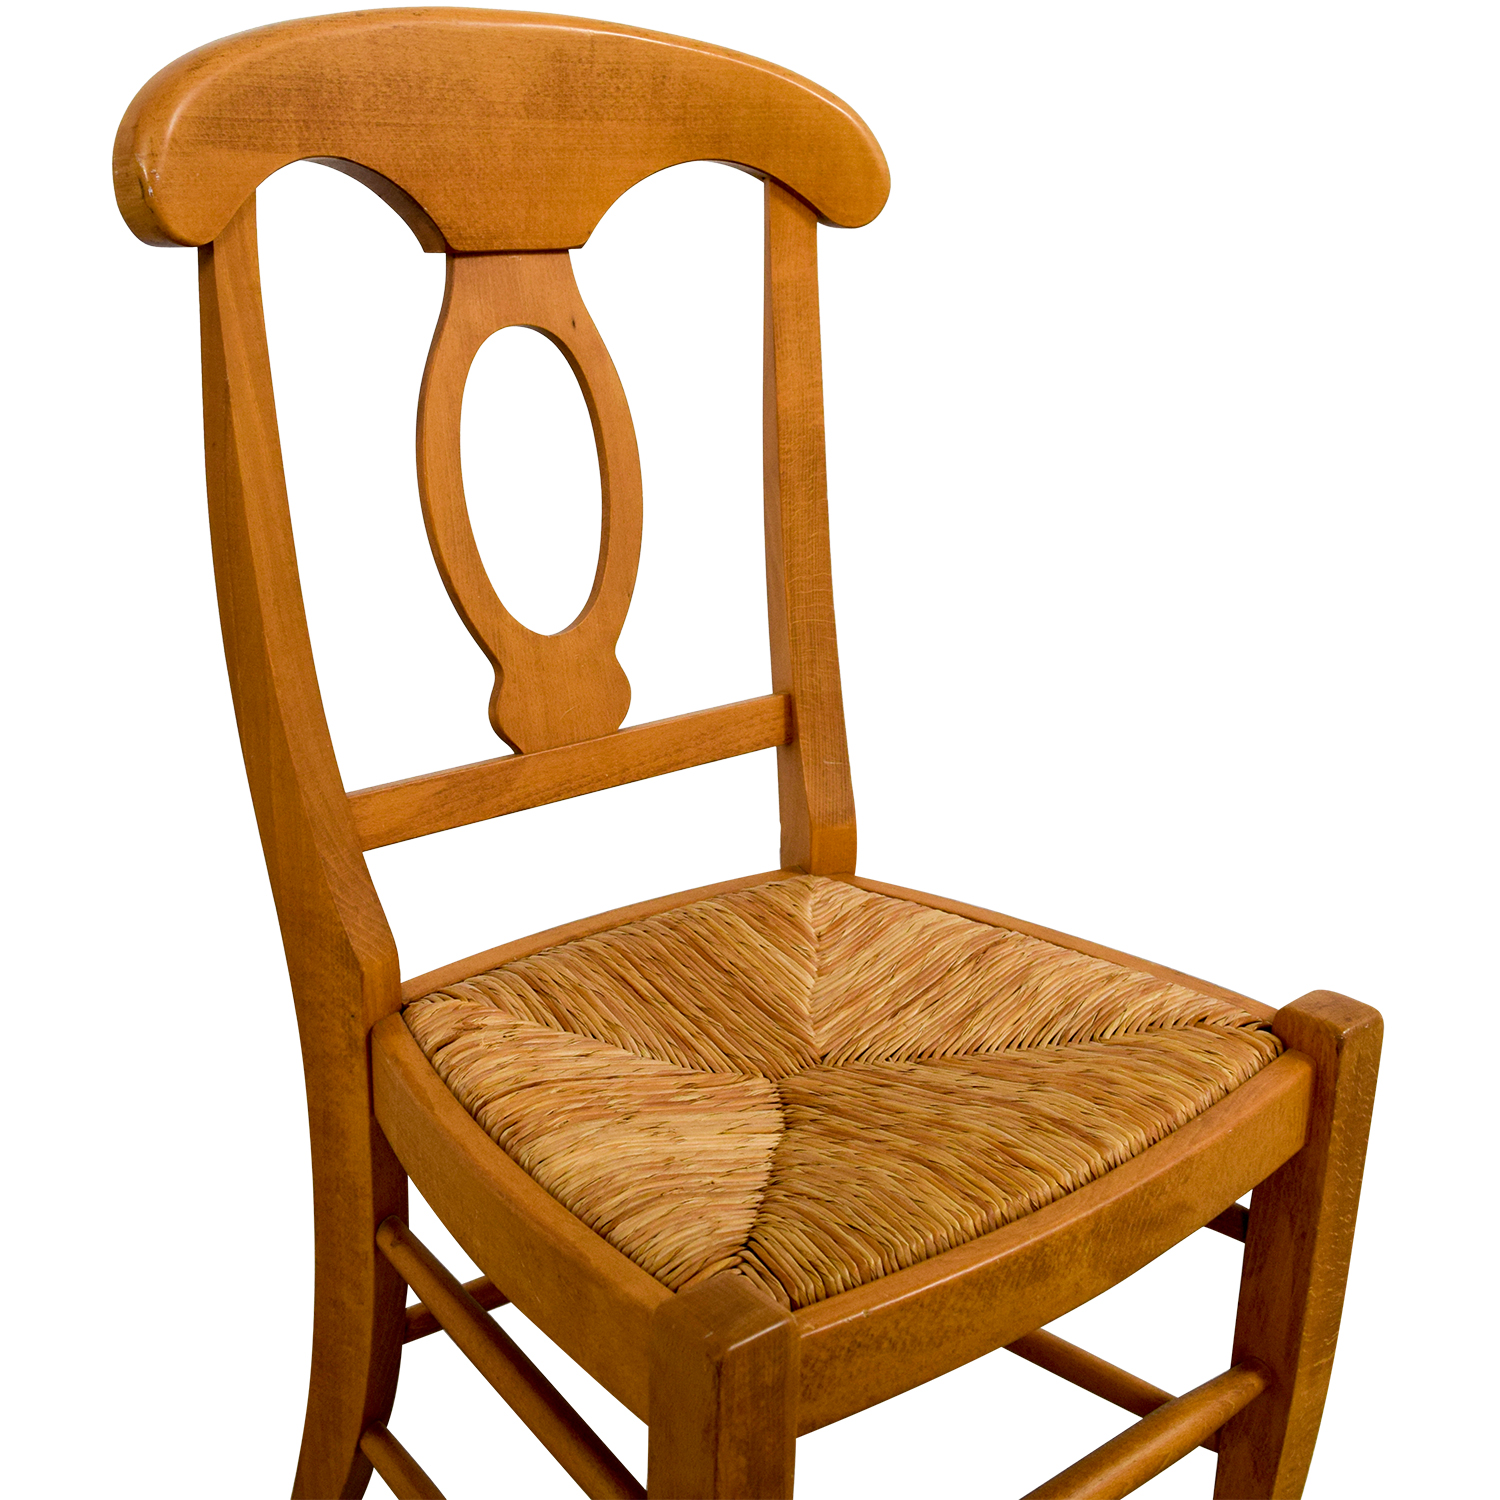 Pottery Barn Pottery Barn Wooden Straw Desk Chair for sale